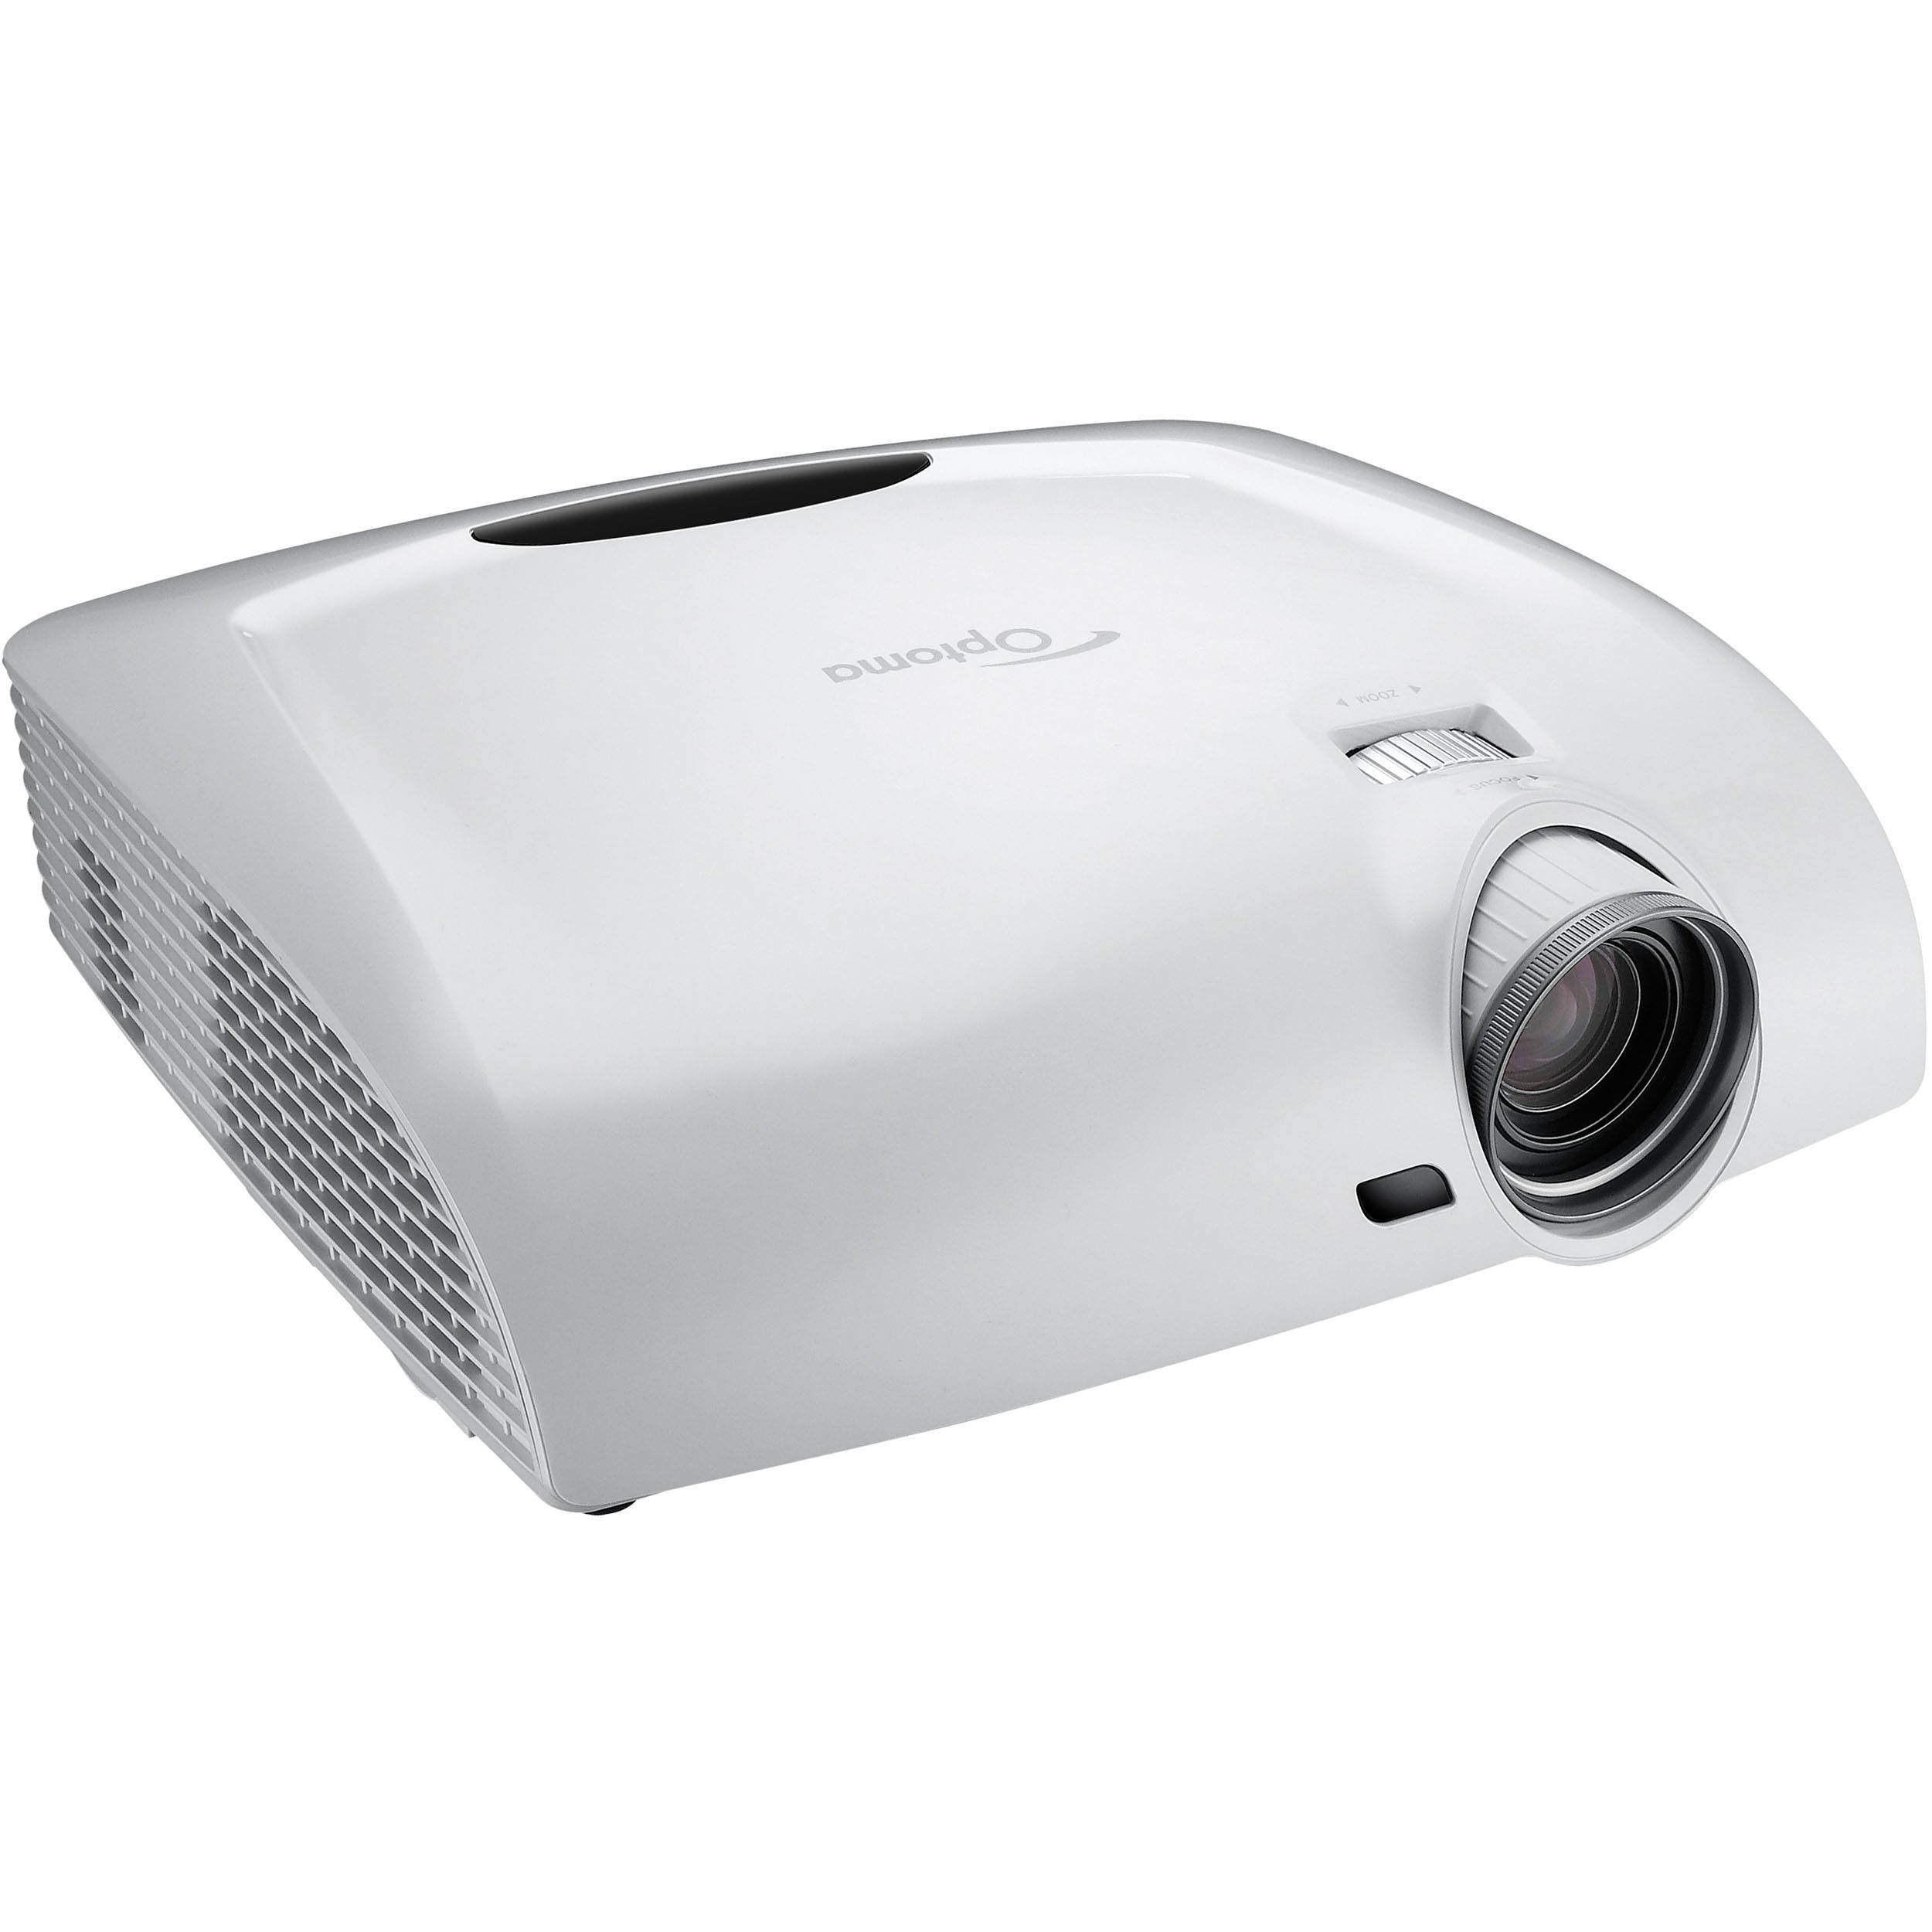 Optoma technology hd33 dlp projector hd33 b h photo video for Hd projector